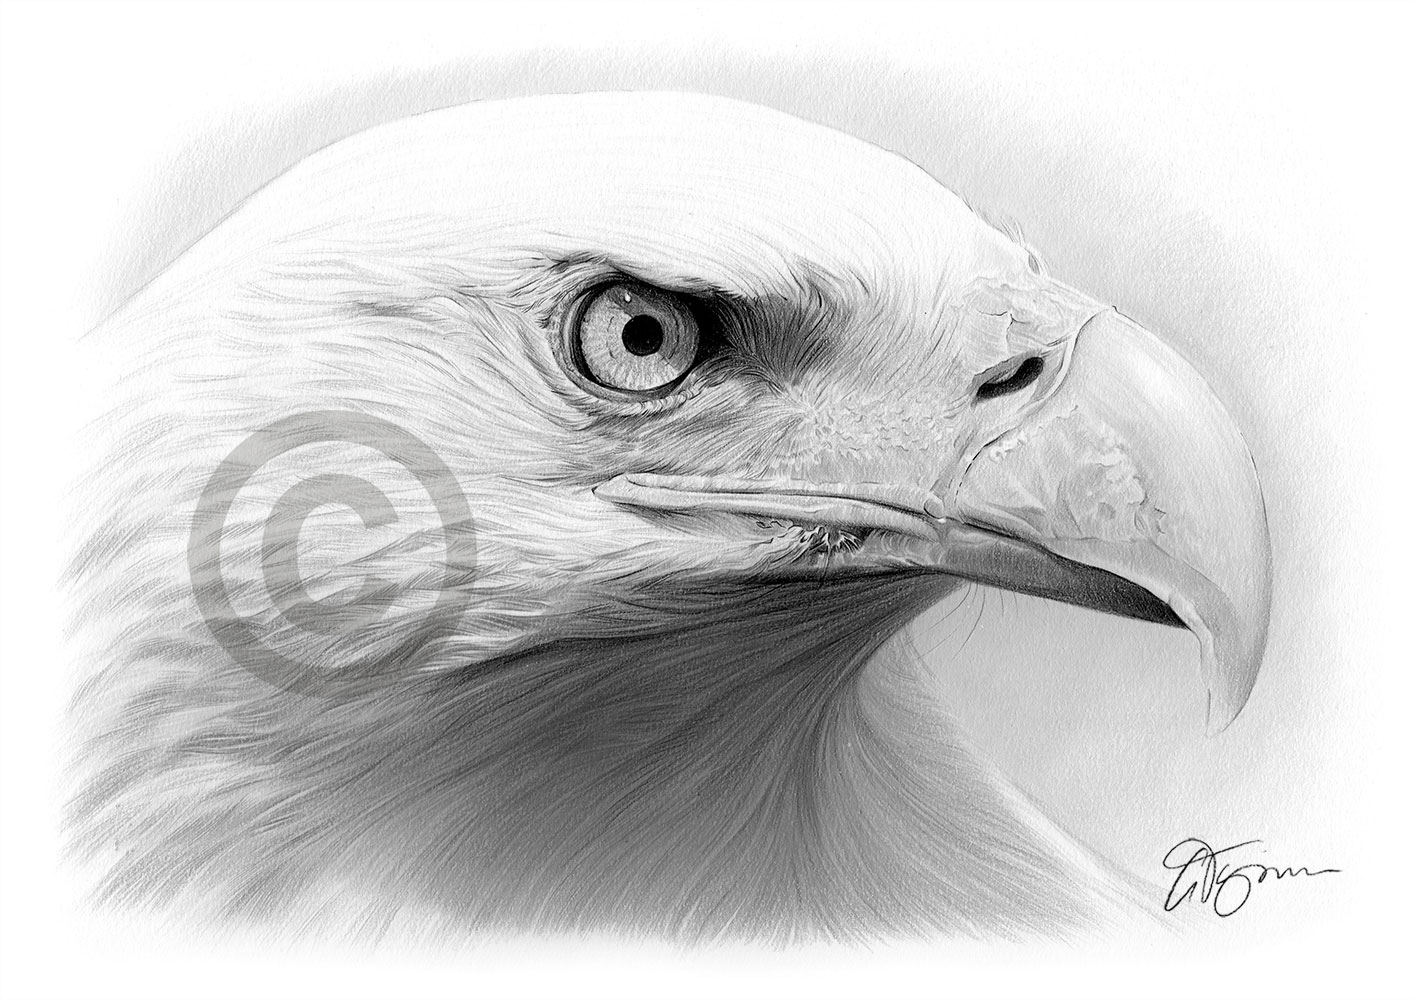 Bald Eagle pencil drawing by artist Gary Tymon